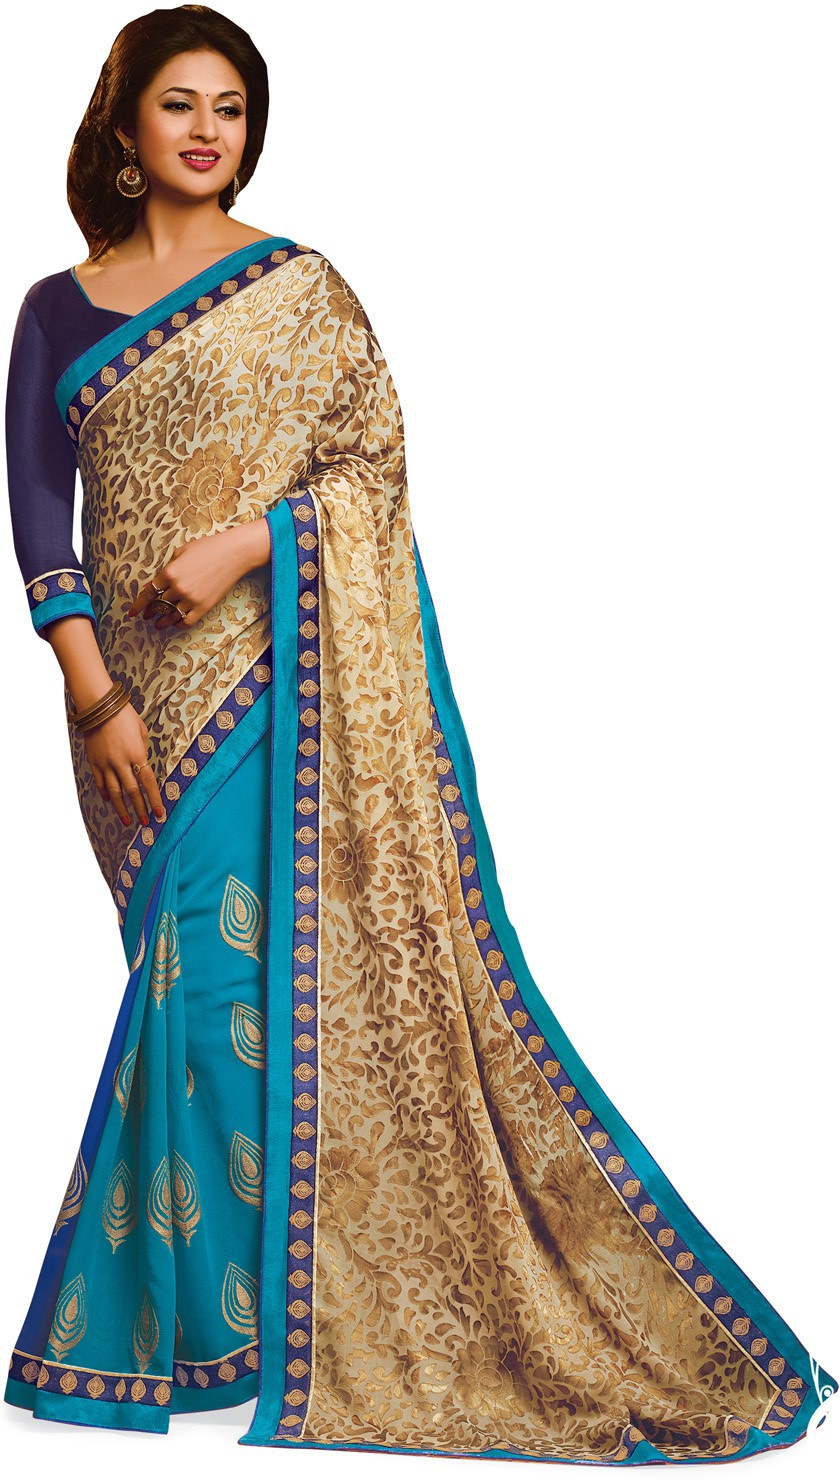 Indianbeauty Self Design, Printed Bollywood Jacquard, Pure Georgette Saree(Beige, Light Blue)